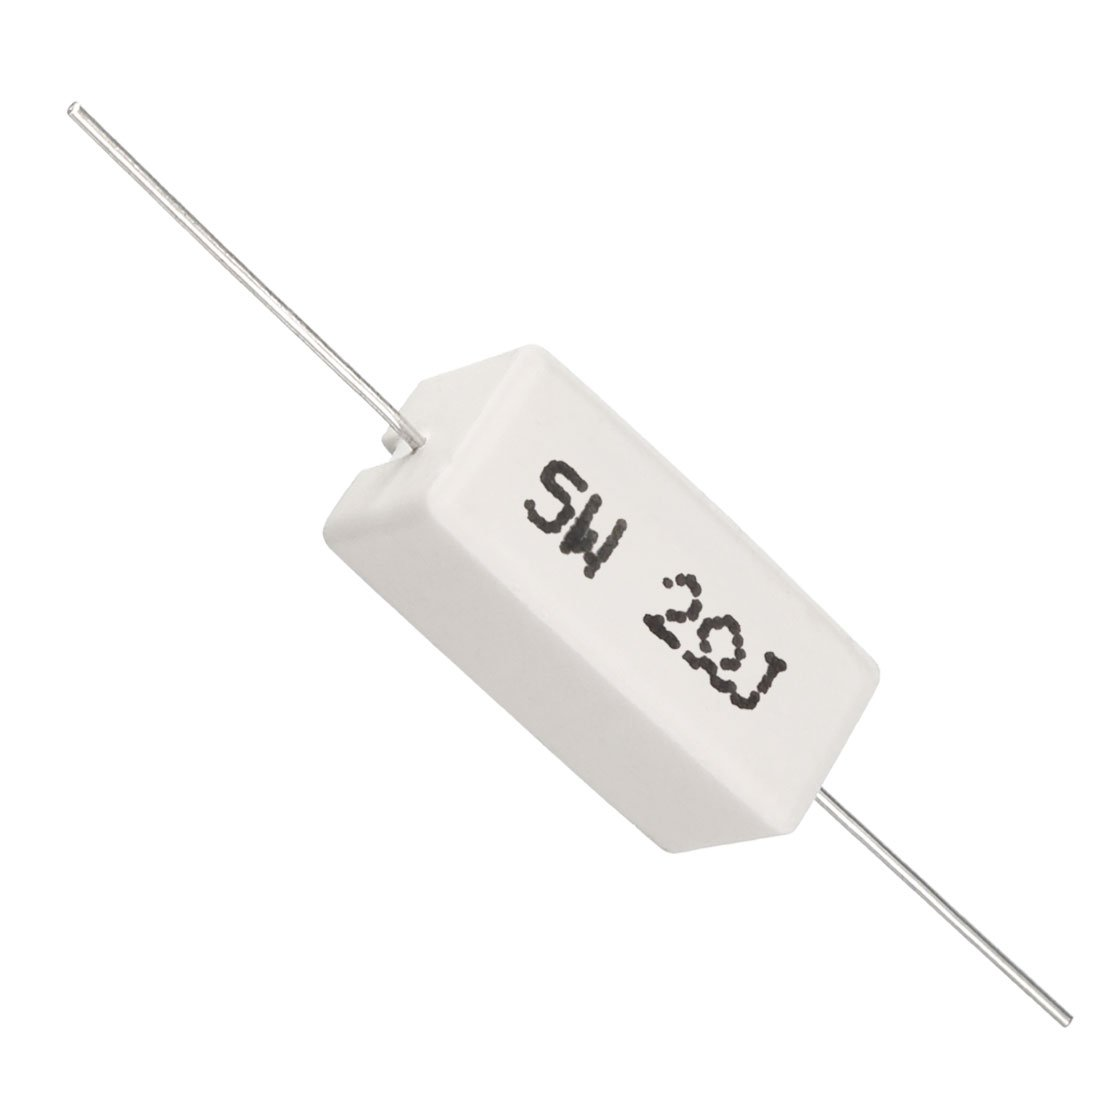 sourcing map 5W 0.68 Ohm Power Resistor Ceramic Cement Resistor Axial Lead 10 Pcs White